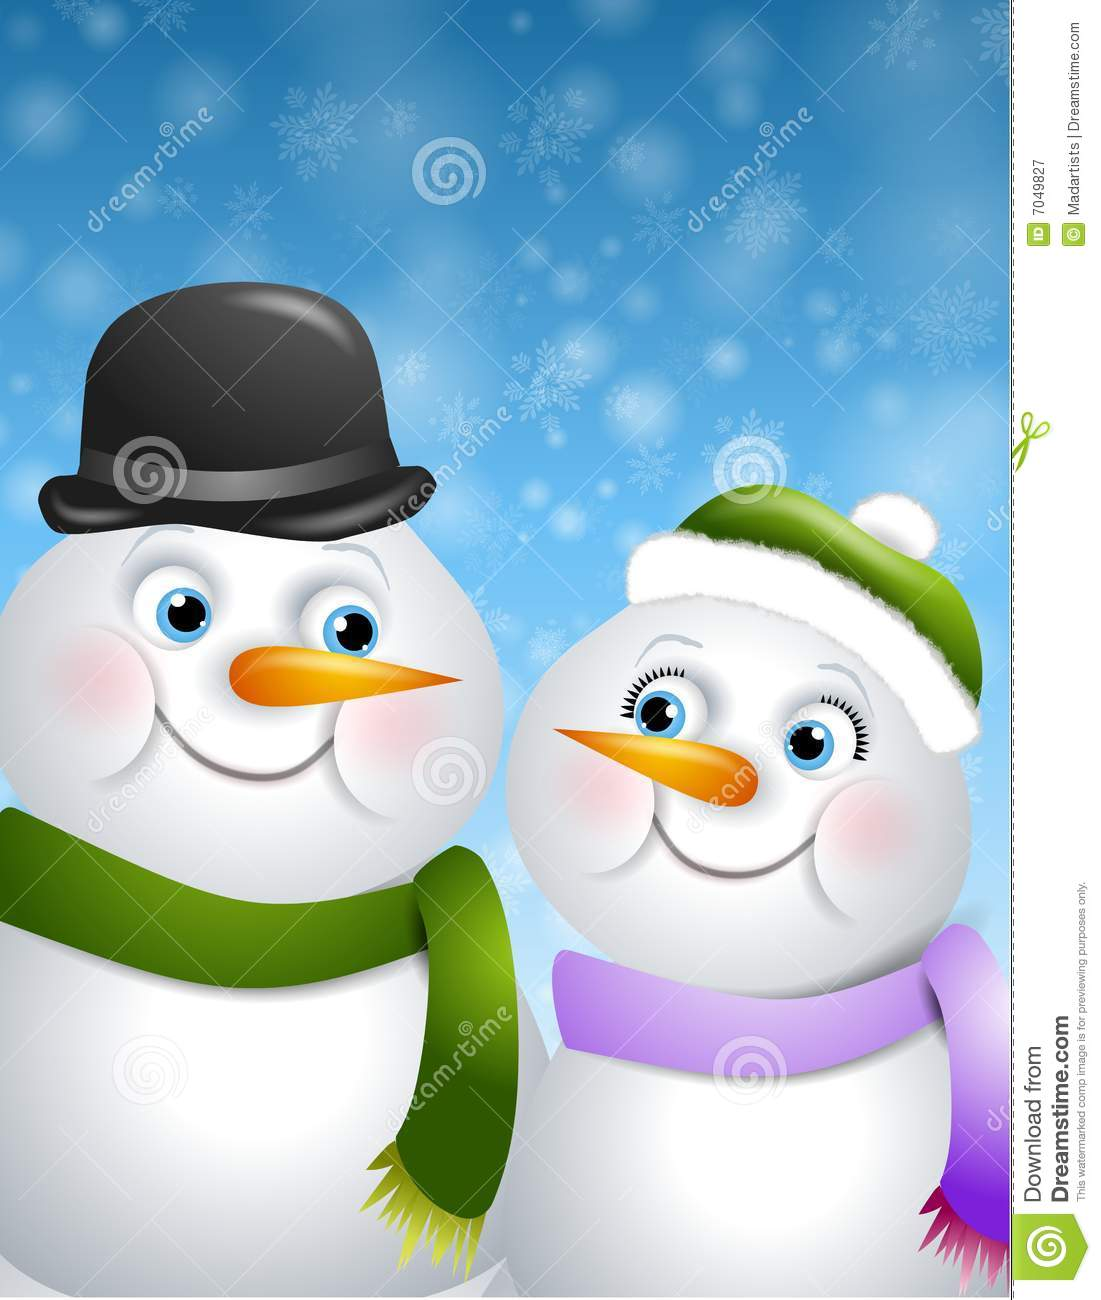 Snowman Couple   Mailbox Happiness-Angee at Postcrossing   Flickr